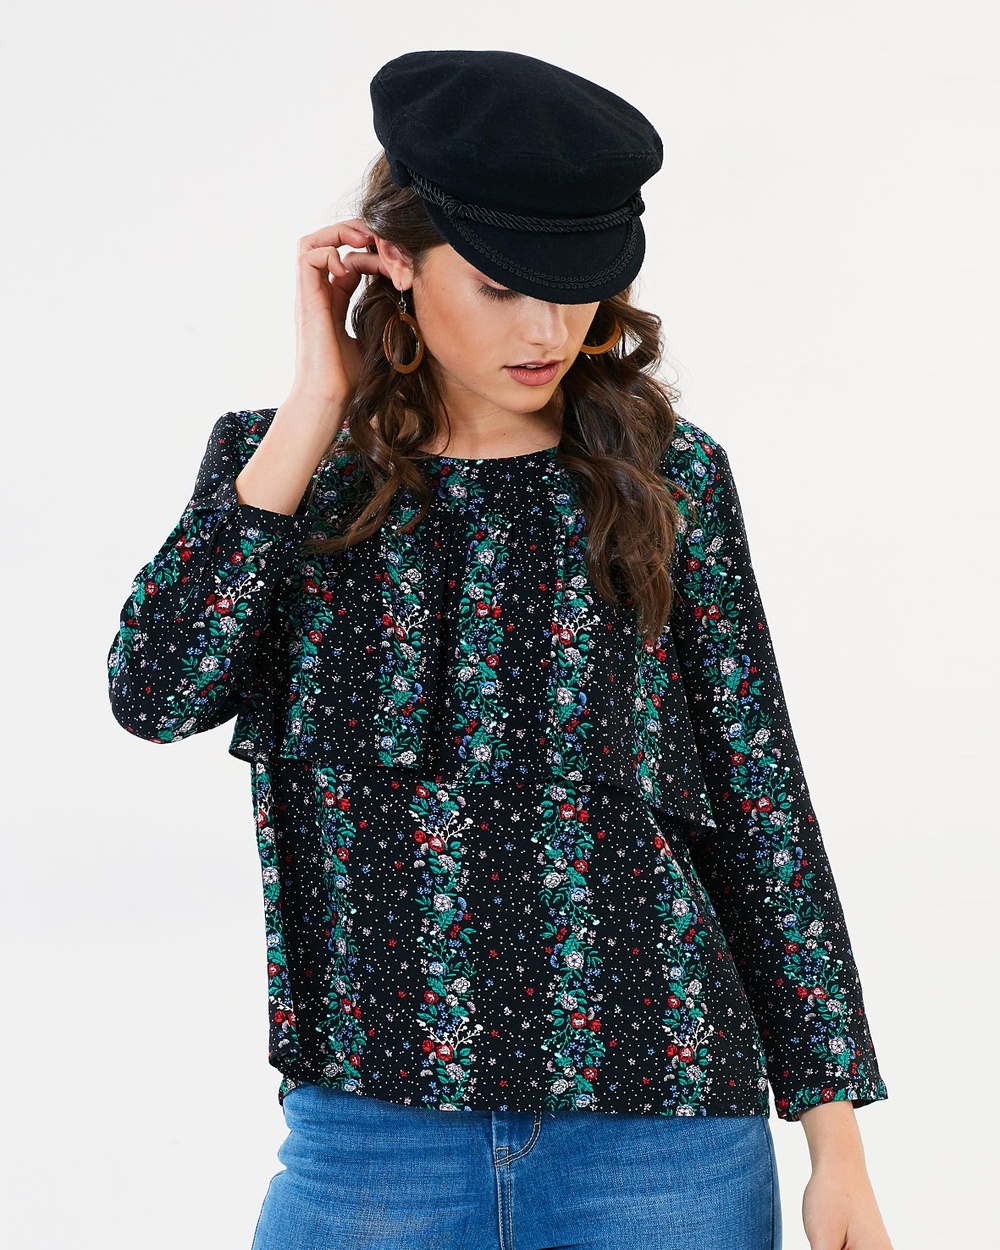 Sass Falling Florals Layered Blouse Tops Falling Florals Print Falling Florals Layered Blouse